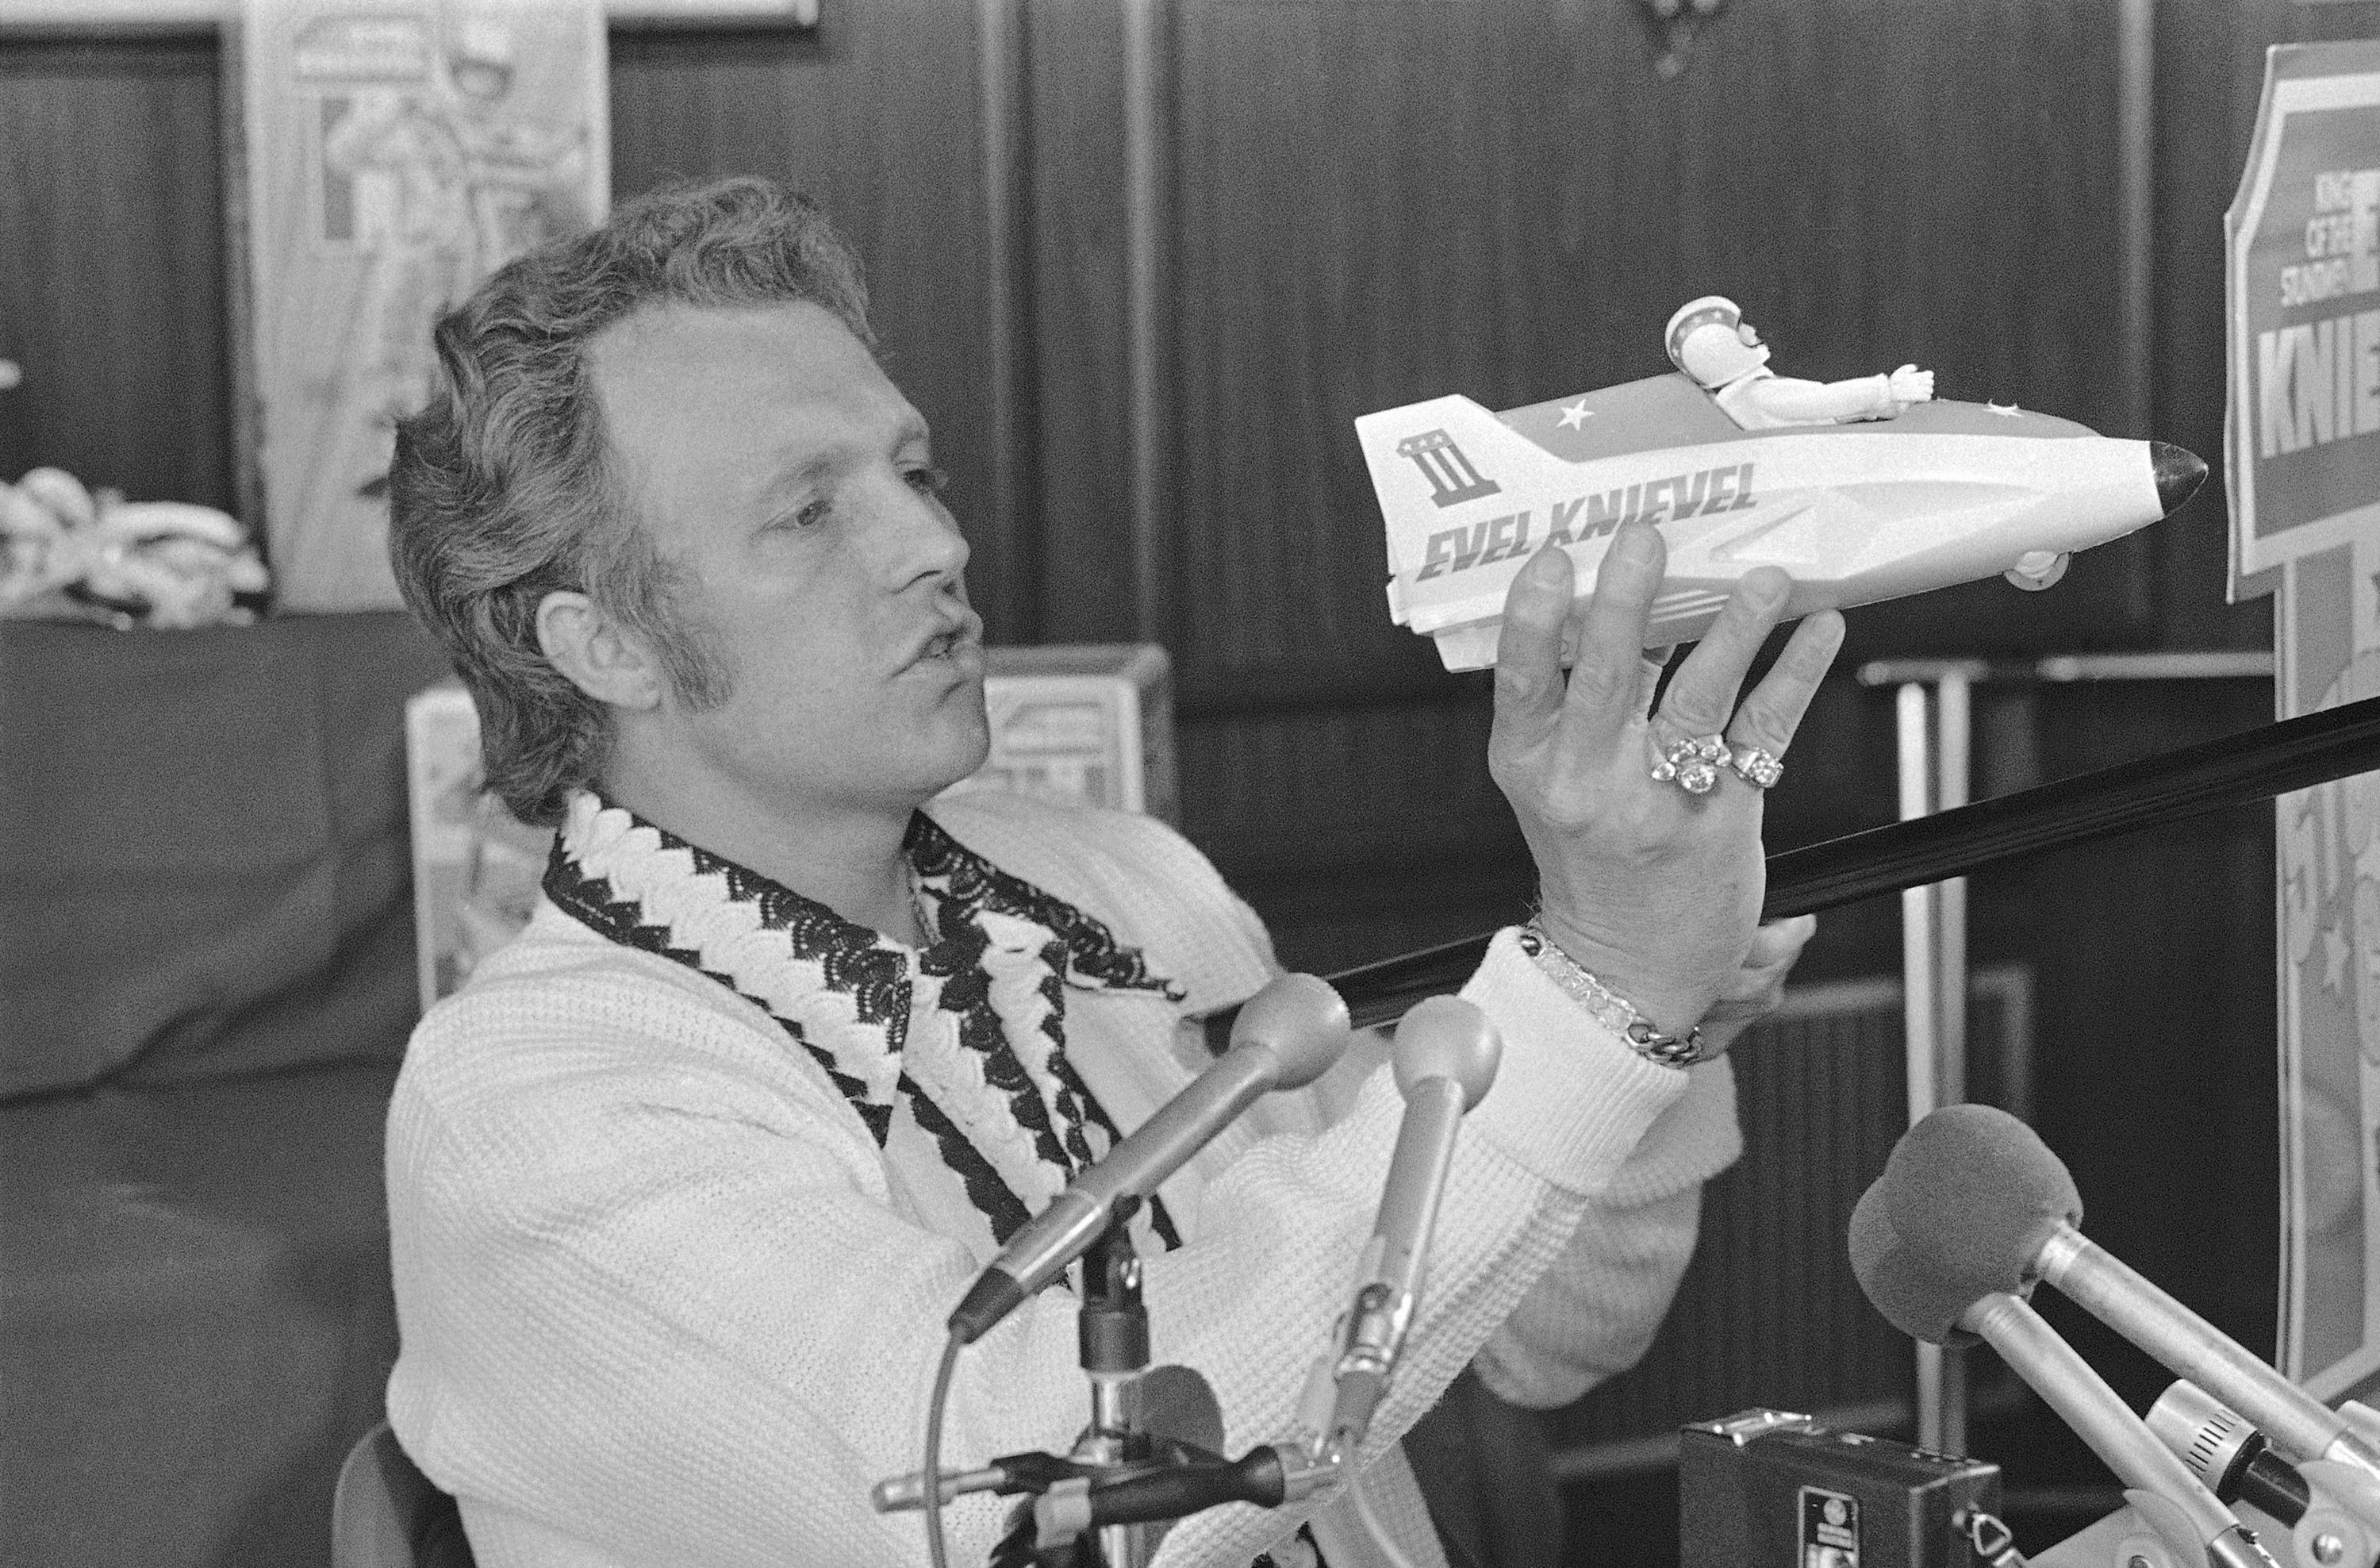 """FILE - In this Sept. 3, 1974, file photo, Evel Knievel talks about his upcoming Snake River canyon, Idaho, jump during a news conference in New York. Evel Knievel's son is on a collision course with the Walt Disney Co. and Pixar over a movie daredevil character named Duke Caboom. A federal trademark infringement lawsuit filed Tuesday, Sept. 22, 2020, in Las Vegas accuses the moviemaker of improperly basing the """"Toy Story 4"""" character on Knievel. (AP Photo, File)"""